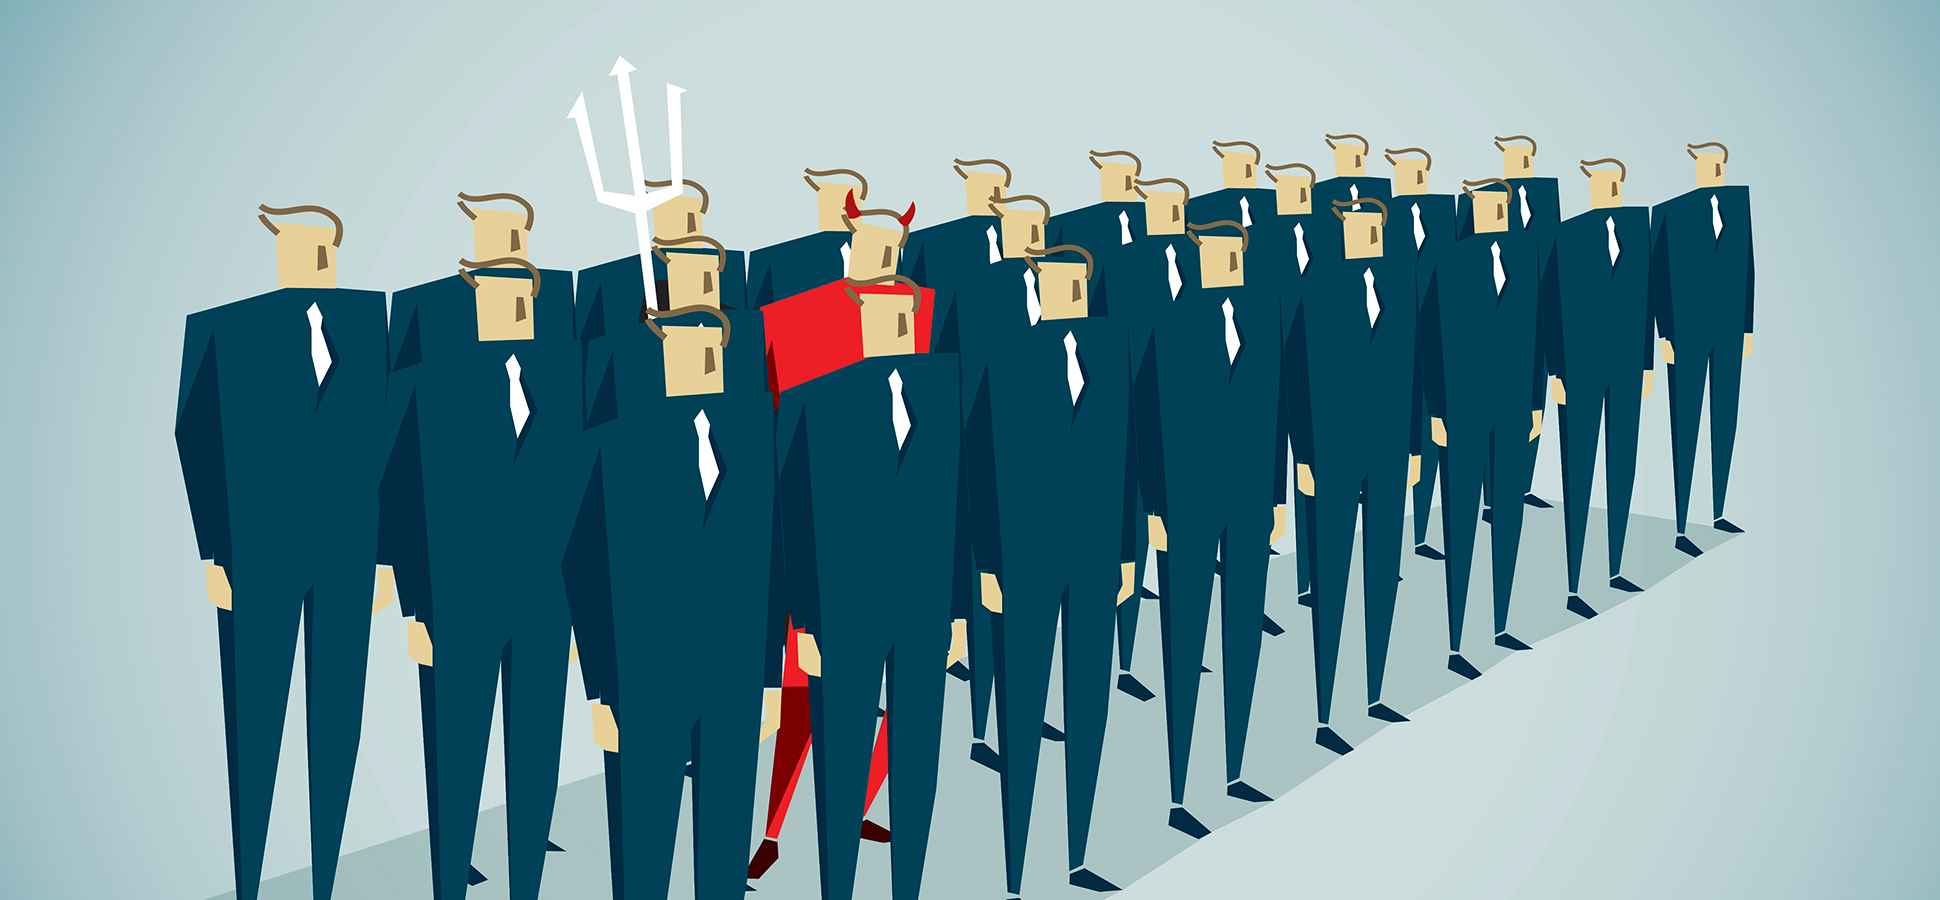 Want to Become Successful? Avoid These 9 Toxic Personalities